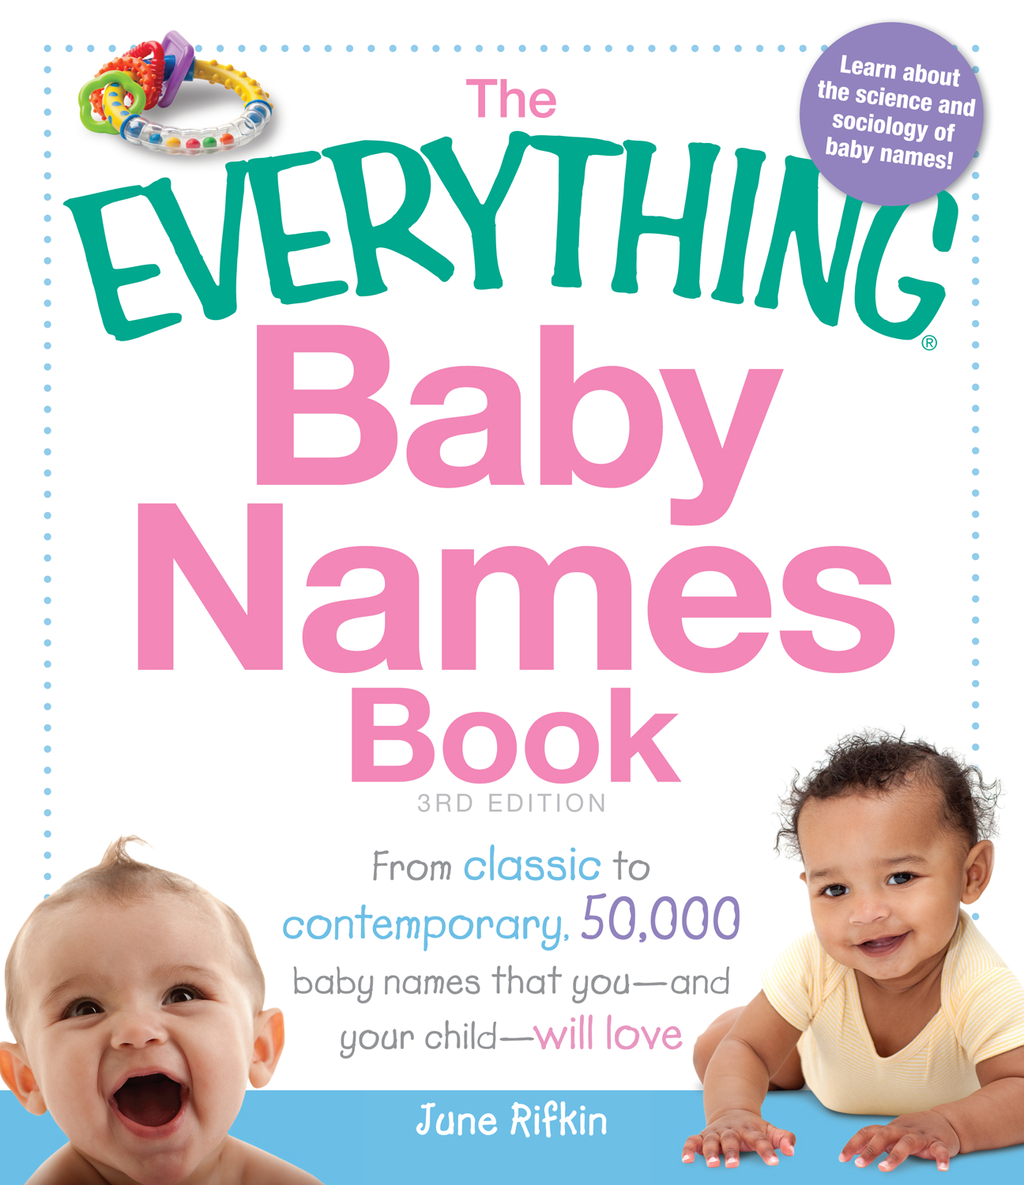 The Everything Baby Names Book: From classic to contemporary, 50,000 baby names that you—and your child-—will love By: June Rifkin